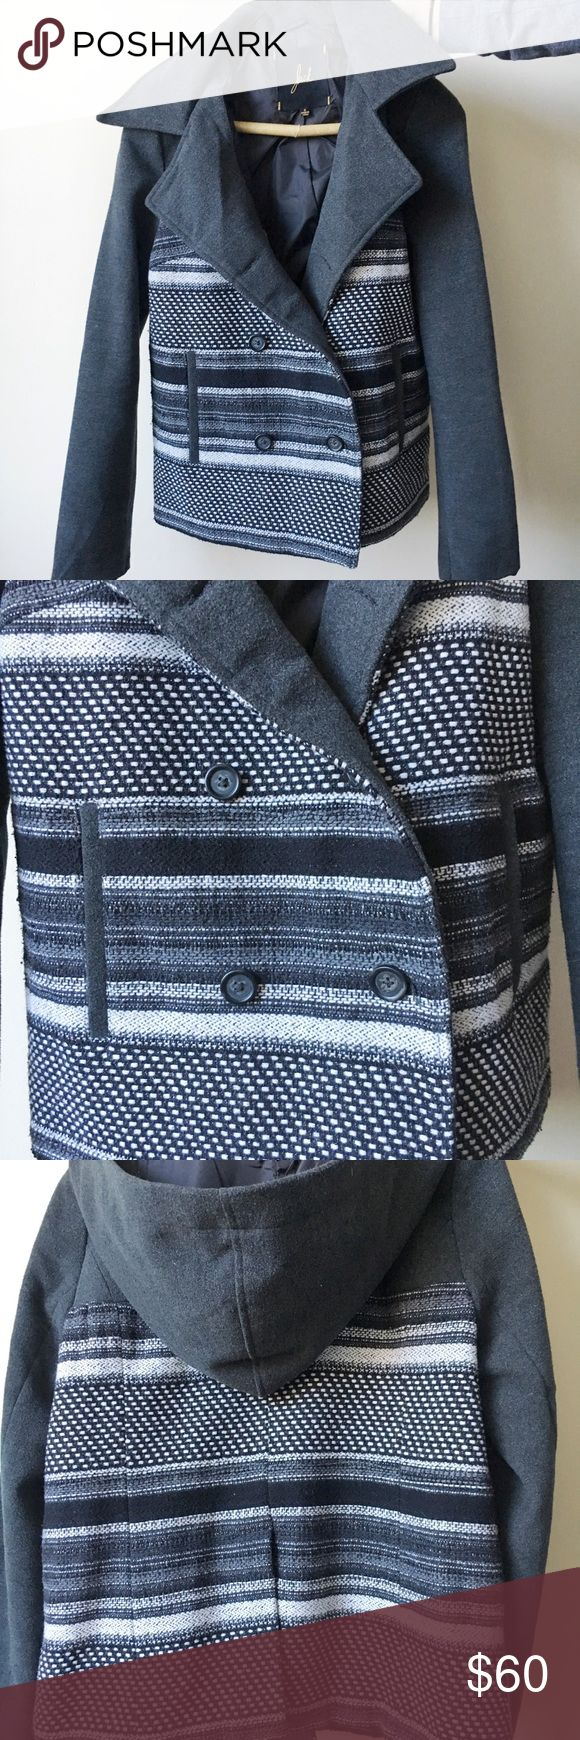 Jack Winter Coat Worn once. I bought this way too small but tried to make it work because it's so cute!! Great condition! Jack by BB Dakota Jackets & Coats